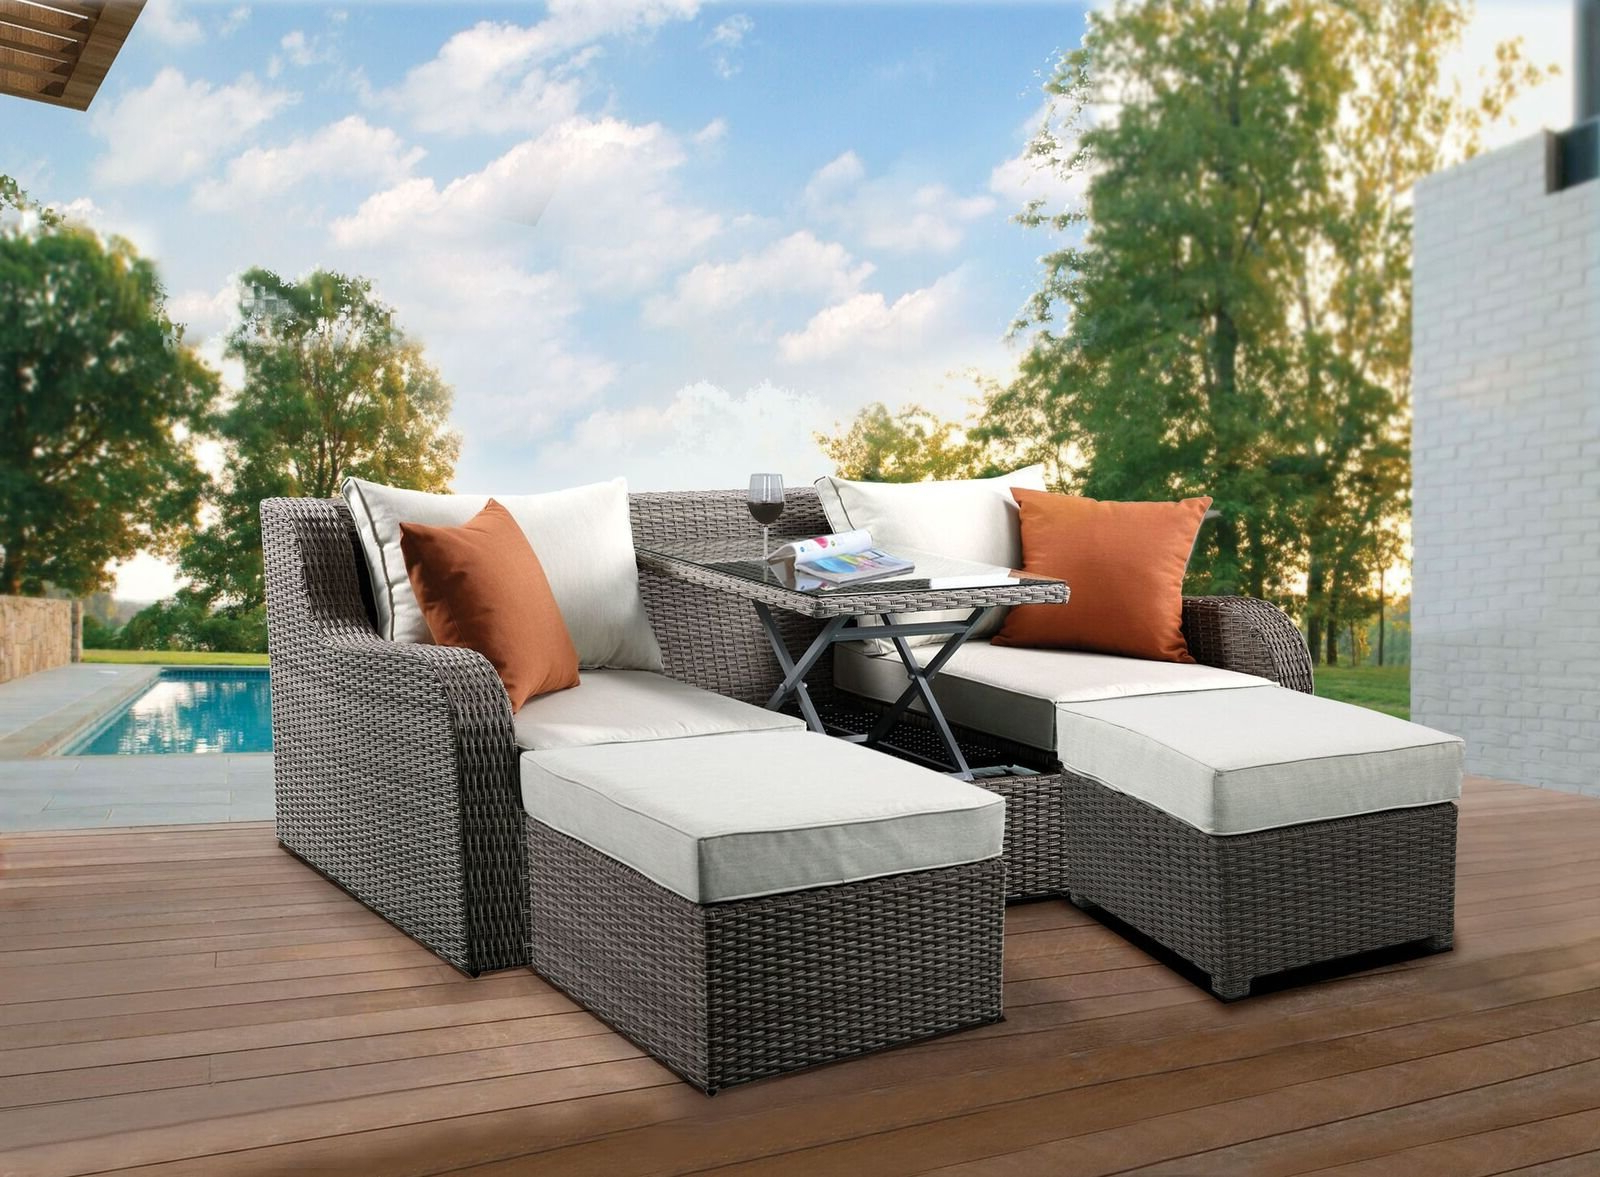 Famous Platt Patio Sofa With Cushions Within Keiran Patio Sofas With Cushions (View 8 of 20)